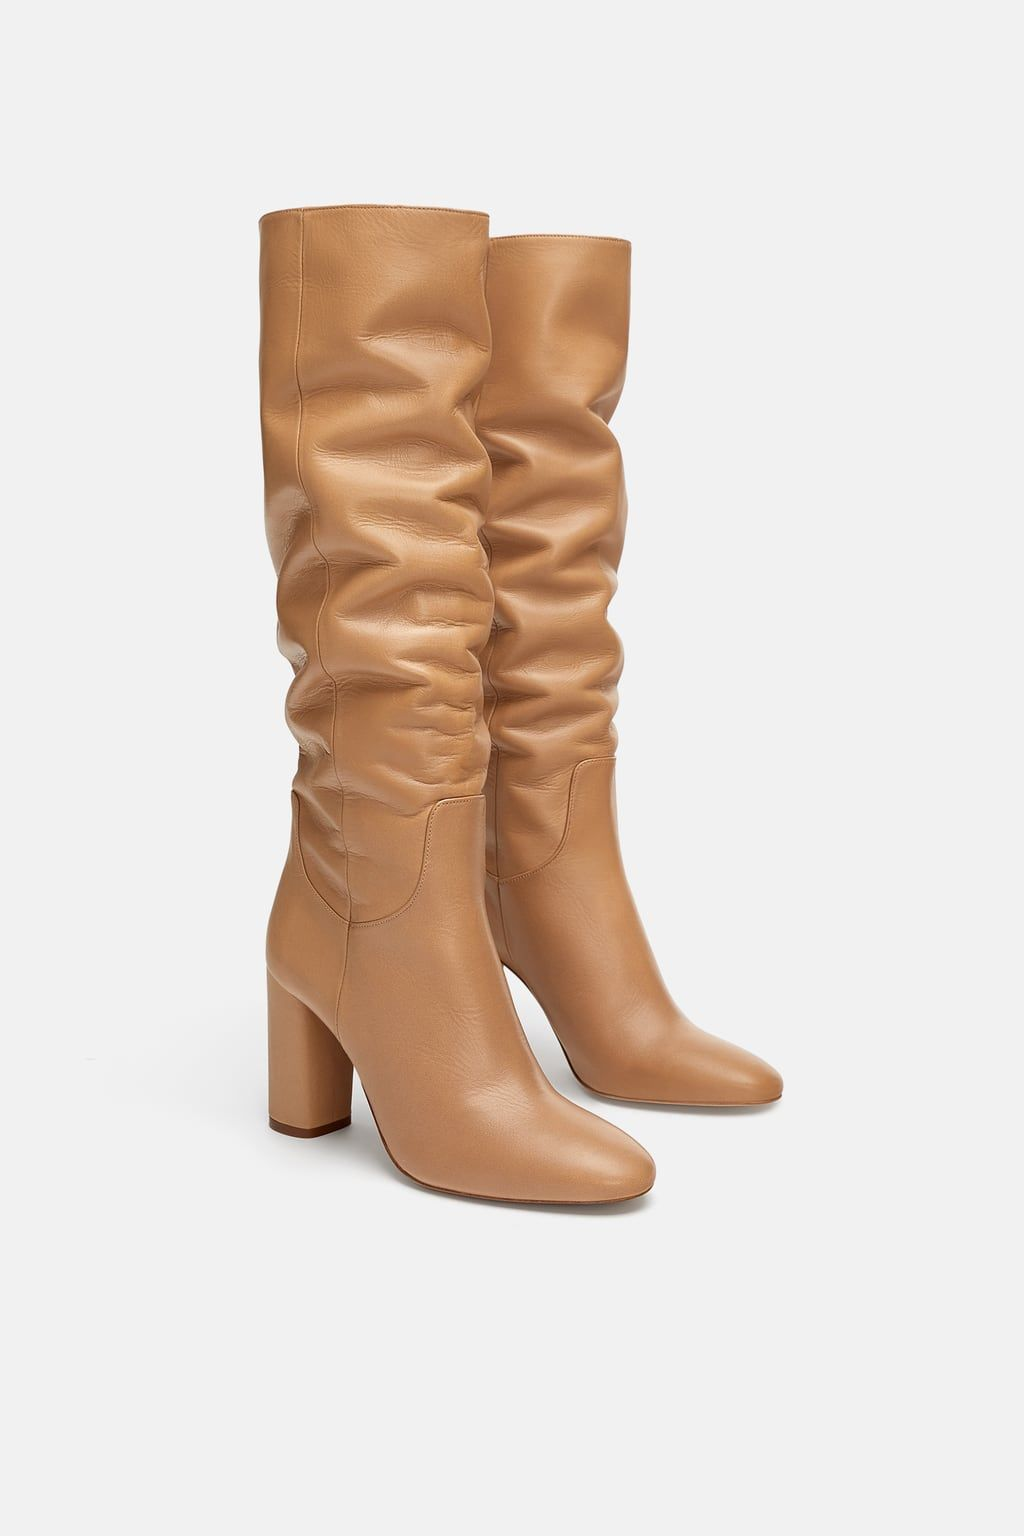 a99e6870501 Image 3 of HIGH HEELED LEATHER BOOTS from Zara